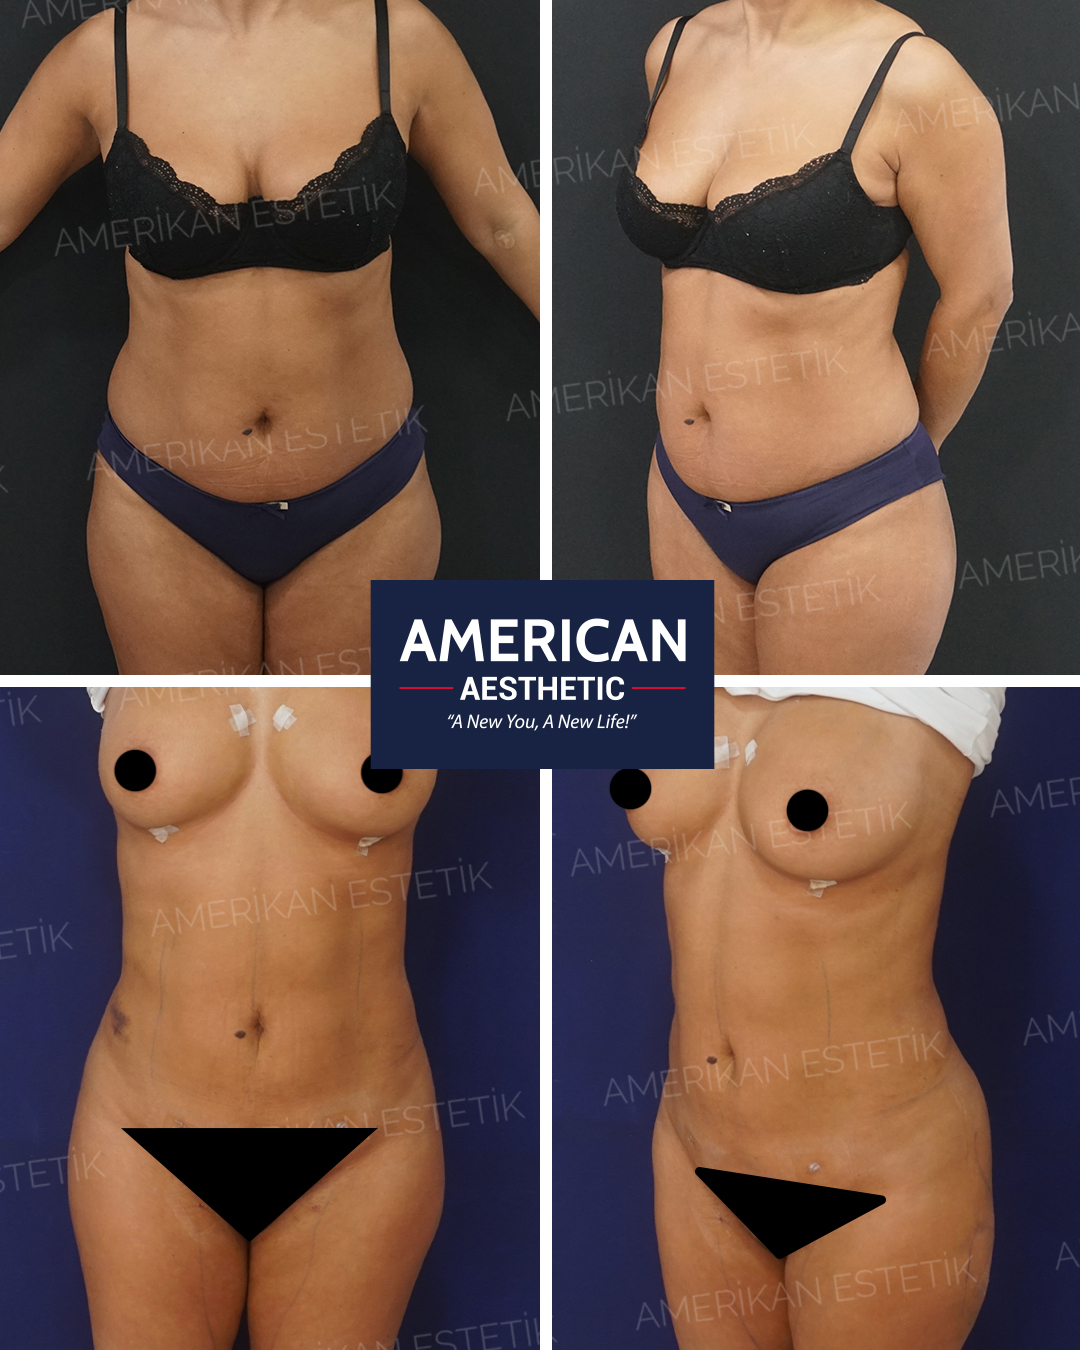 Liposuction Aesthetics Treatment